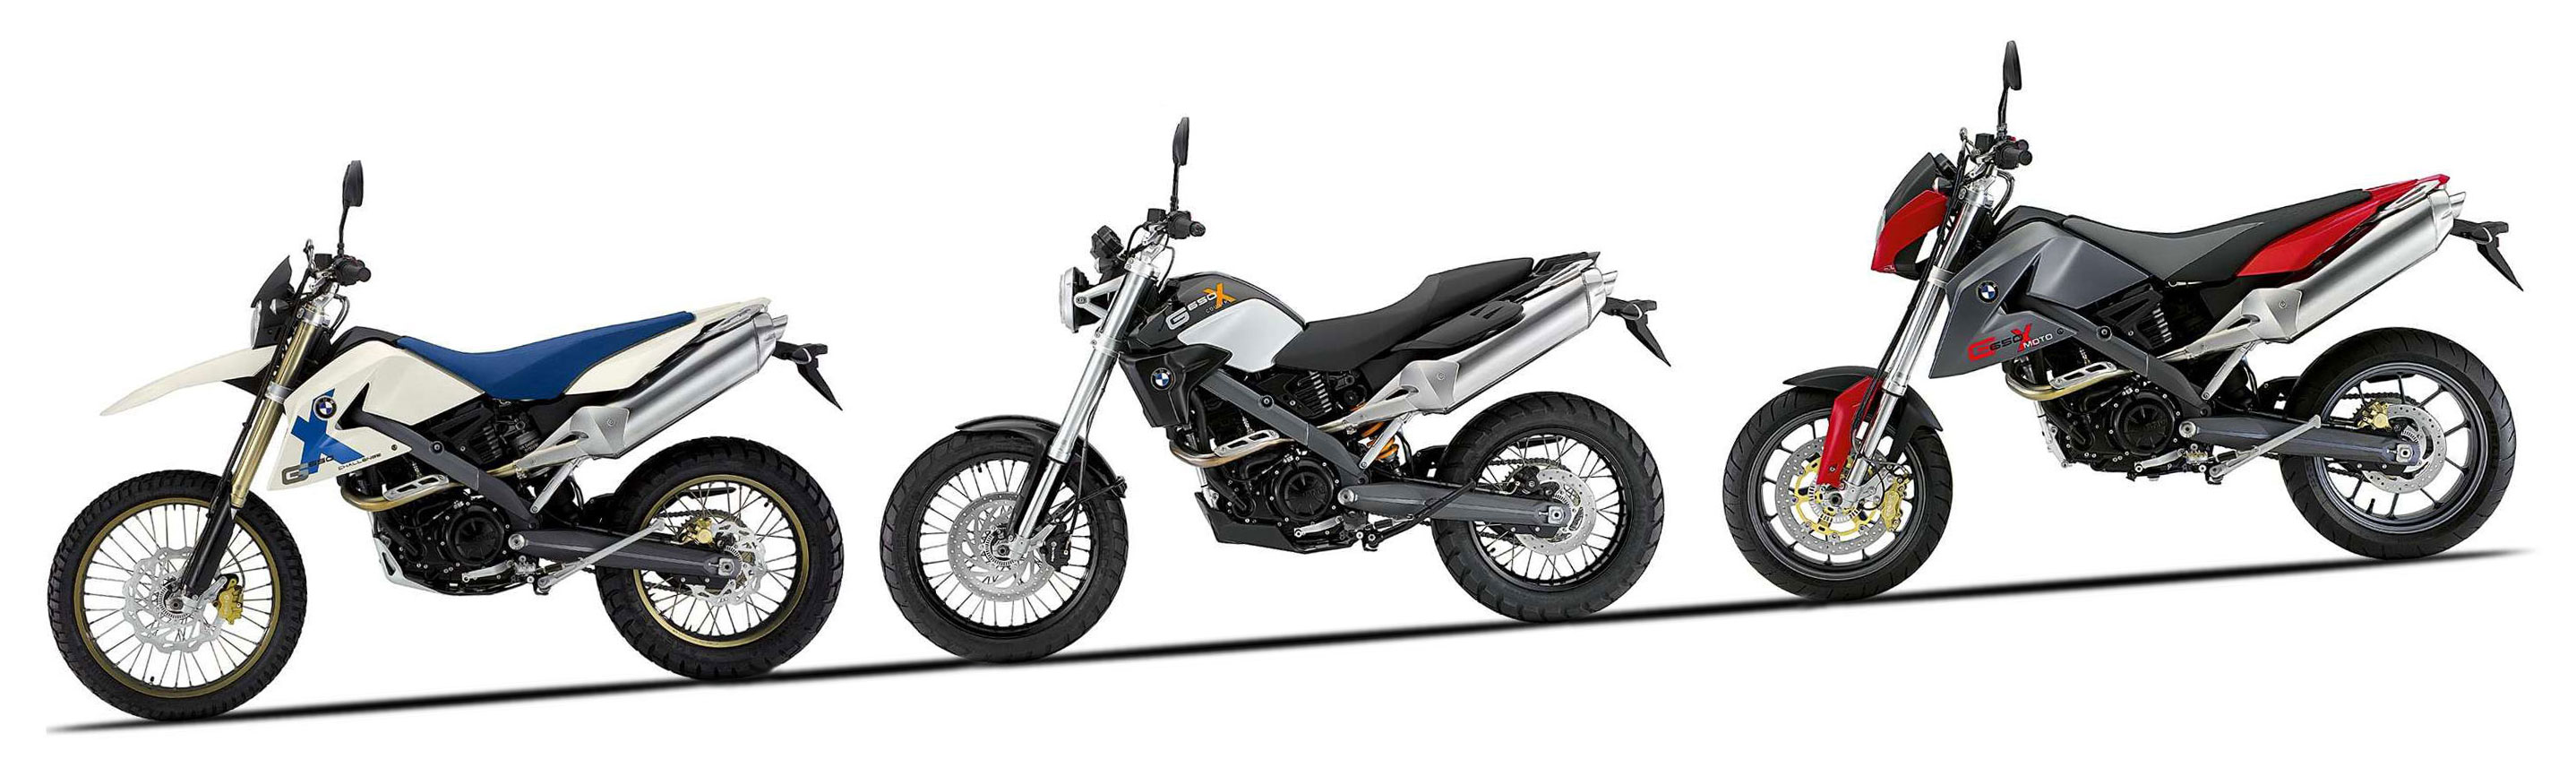 Bmw G310r The New X Range